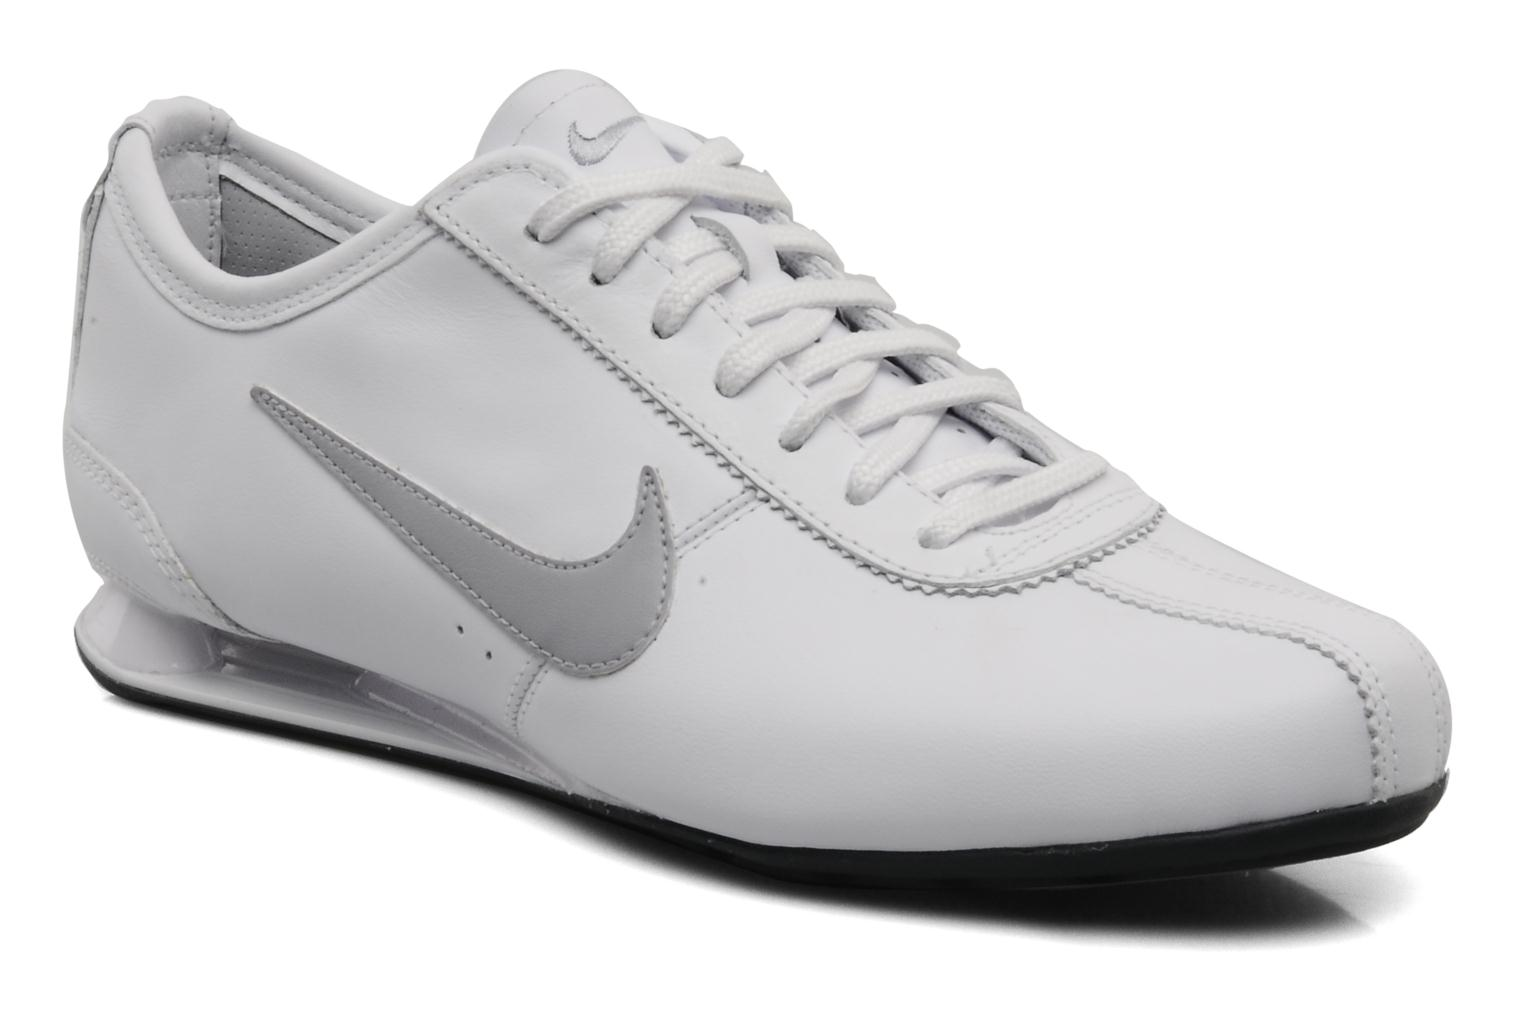 low priced 72ef5 cf639 ... Trainers Nike Nike Shox Rivalry White detailed view Pair view ...